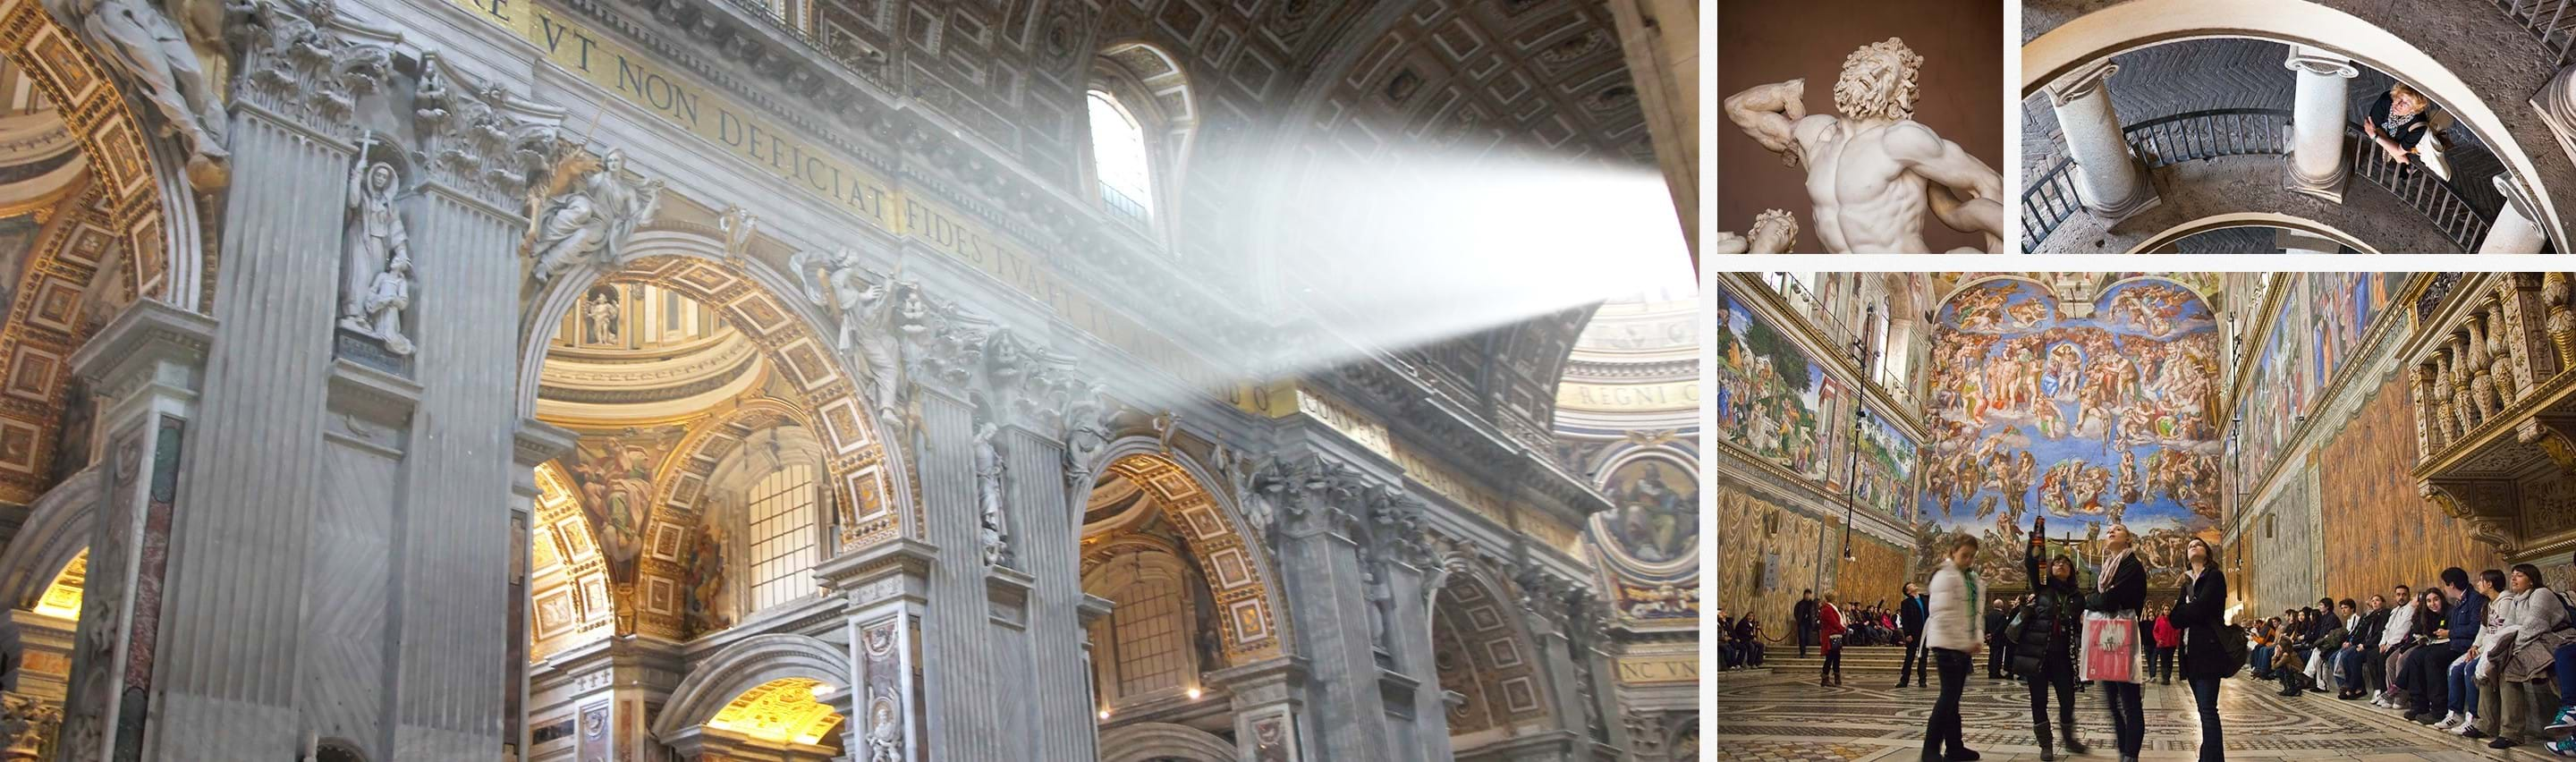 Extended Sistine Chapel and Vatican Museums Tour with Bramante Staircase and St. Peter's Basilica